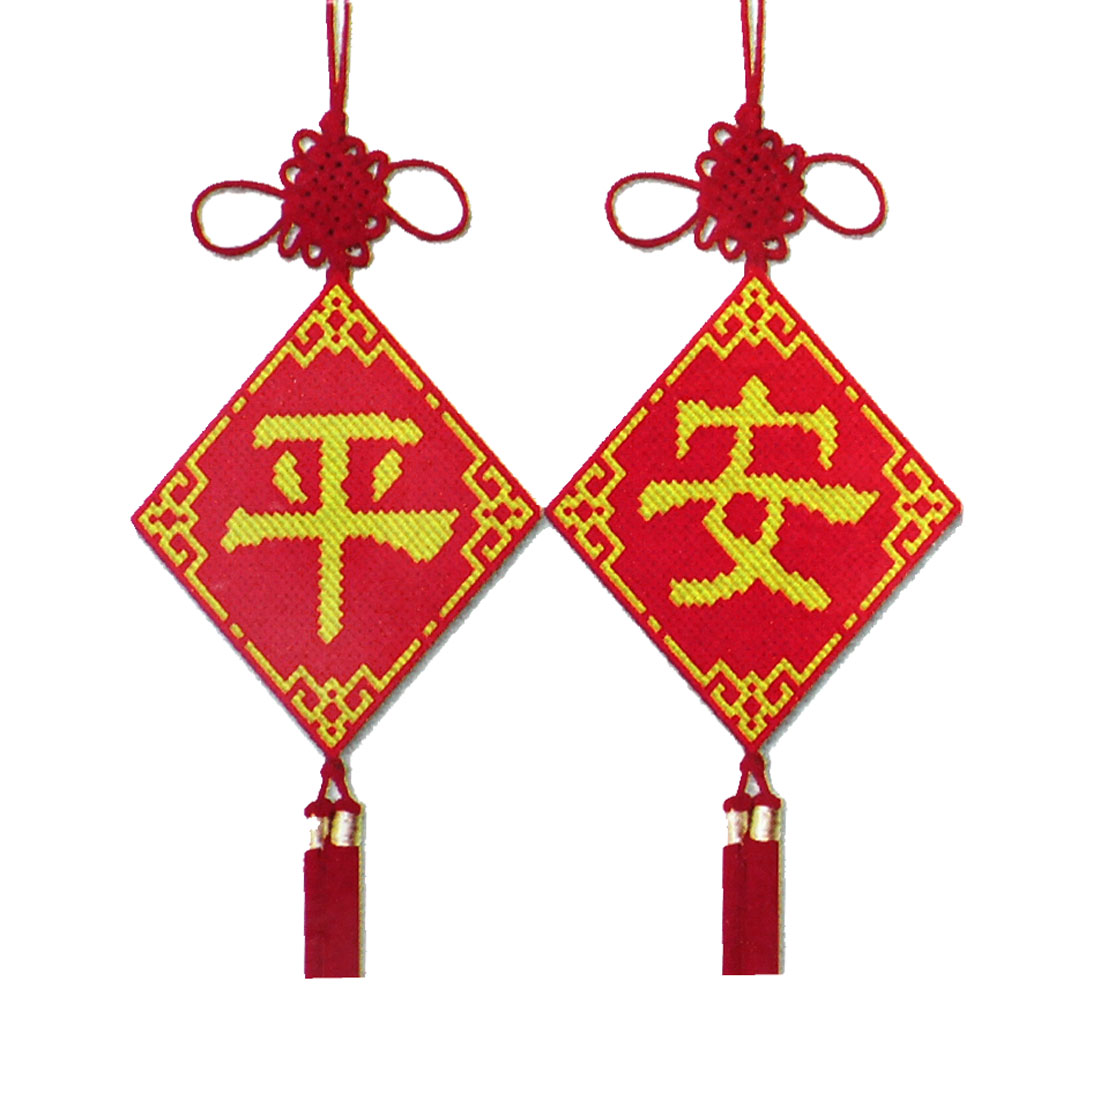 Red Yellow Chinese Knot Safeness Lucky Print Counted Cross Stitch 2 Pcs